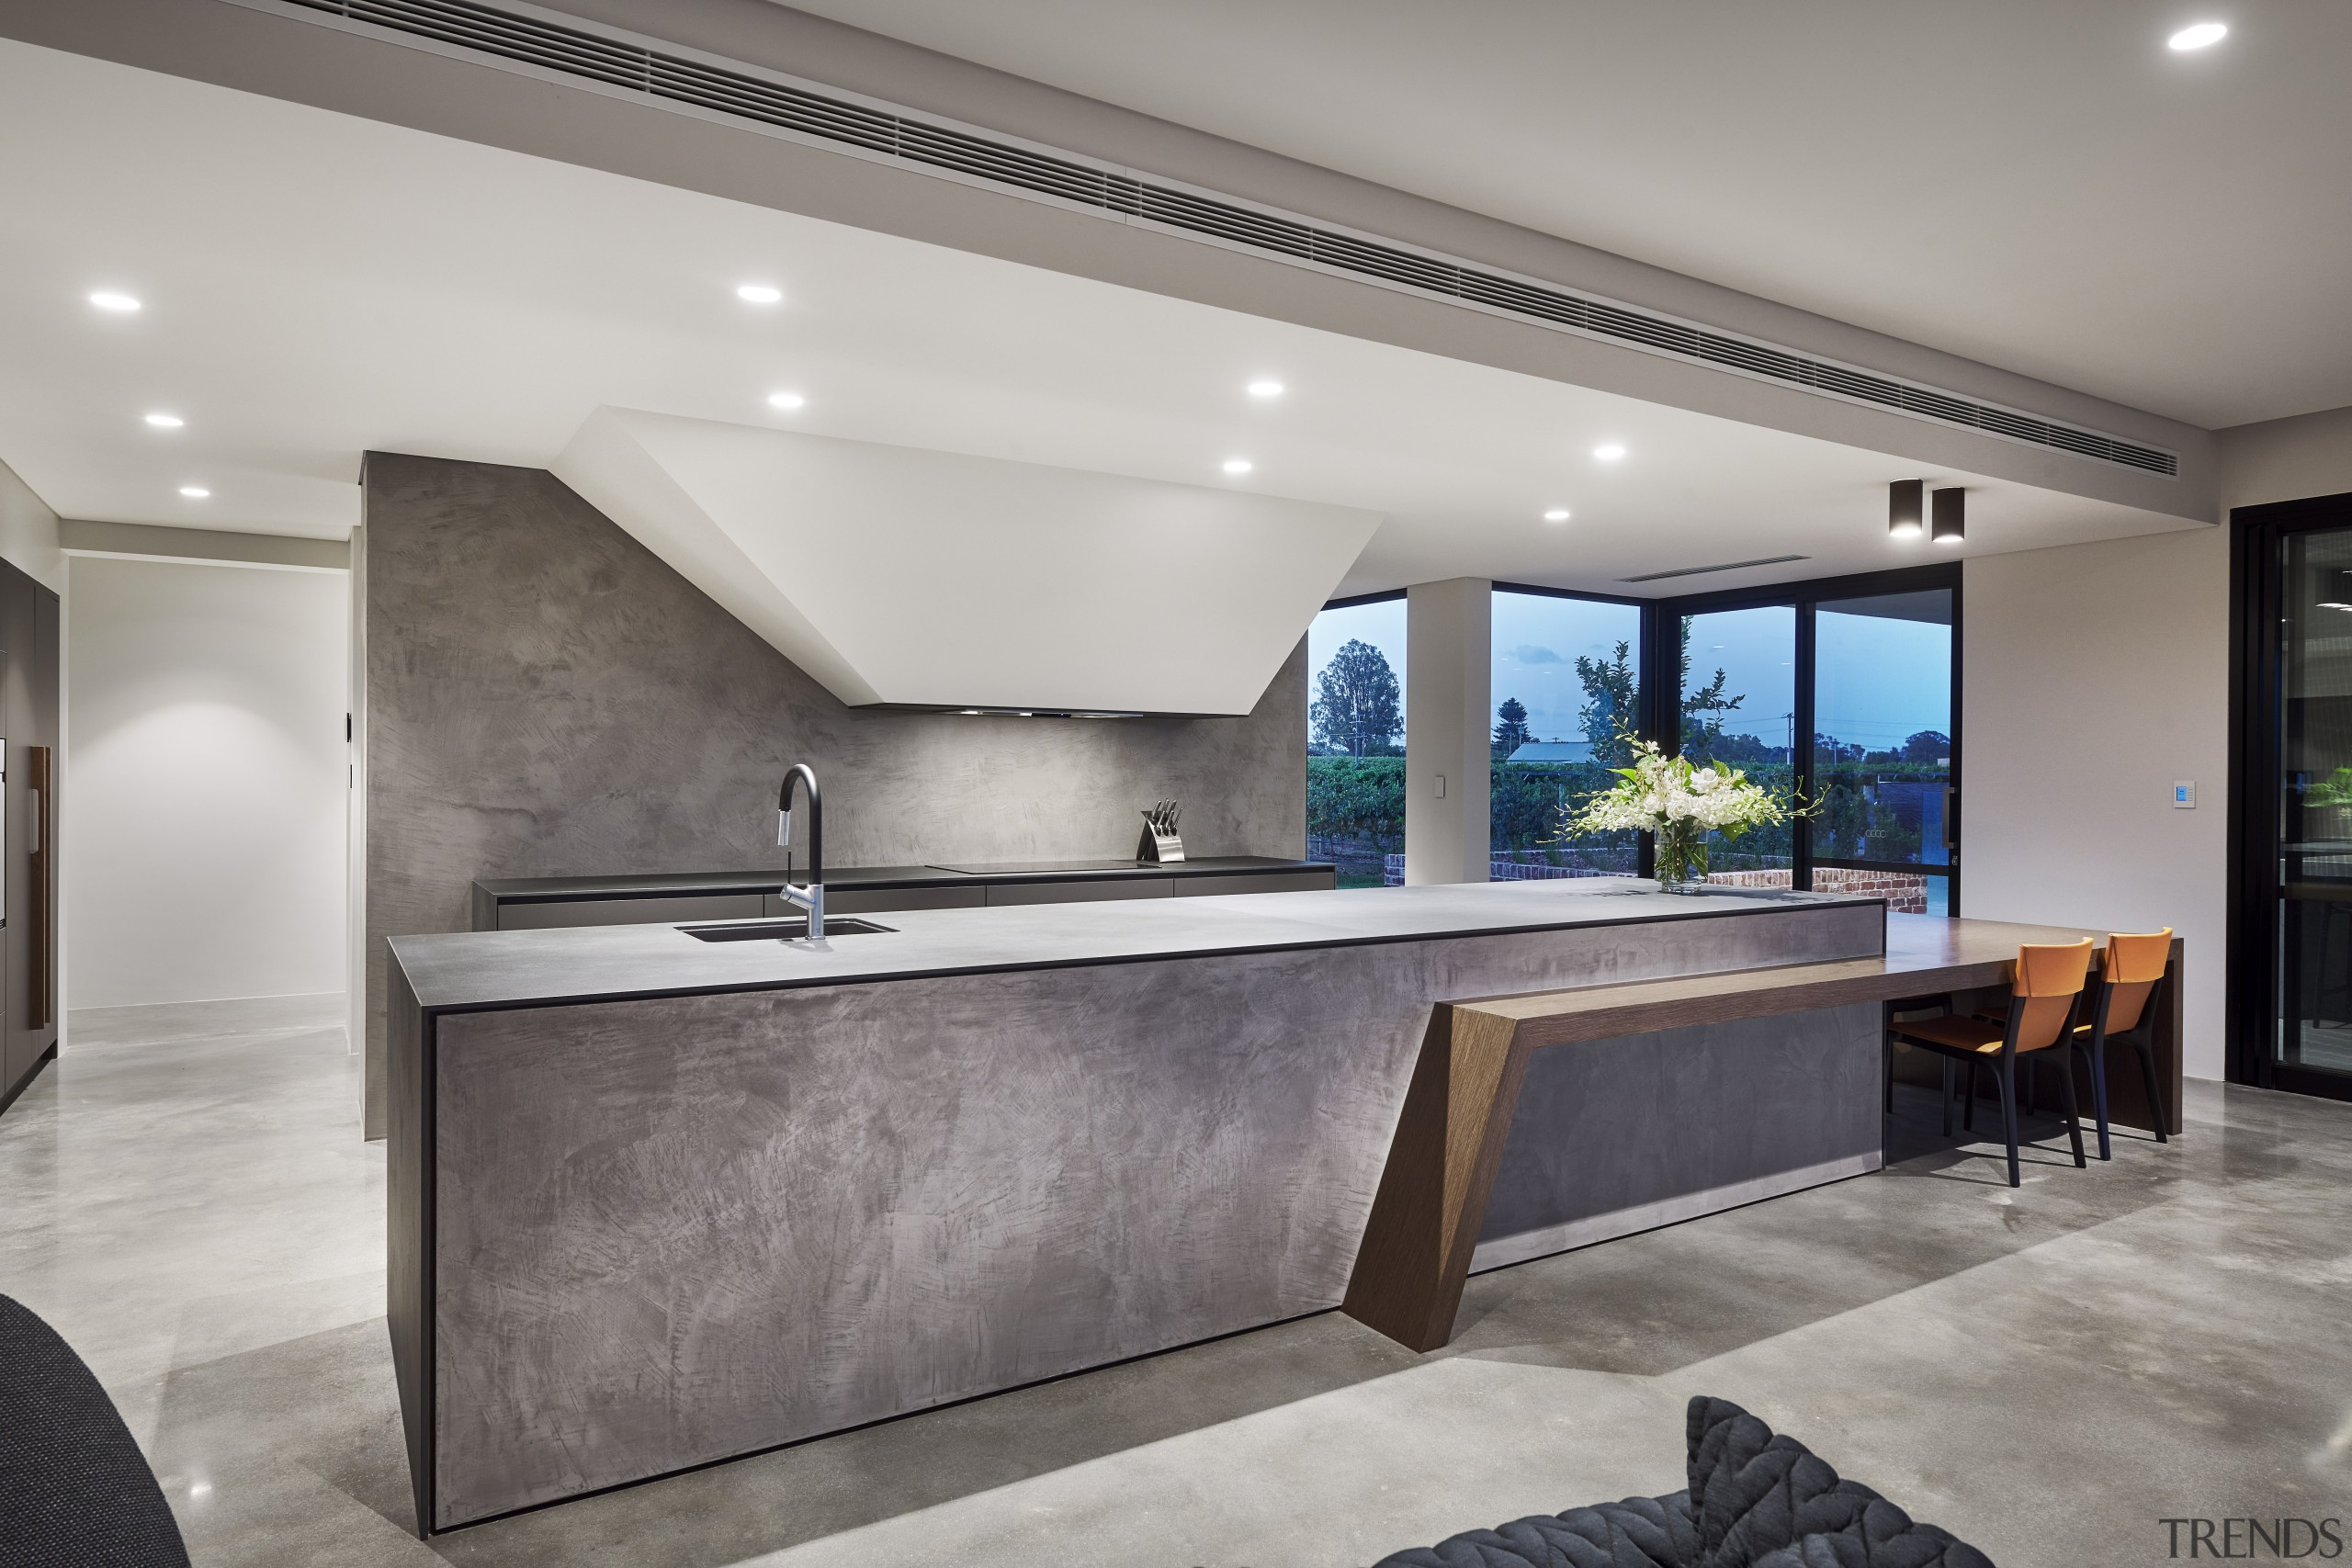 The kitchen's strong, sculptural nature extends to the